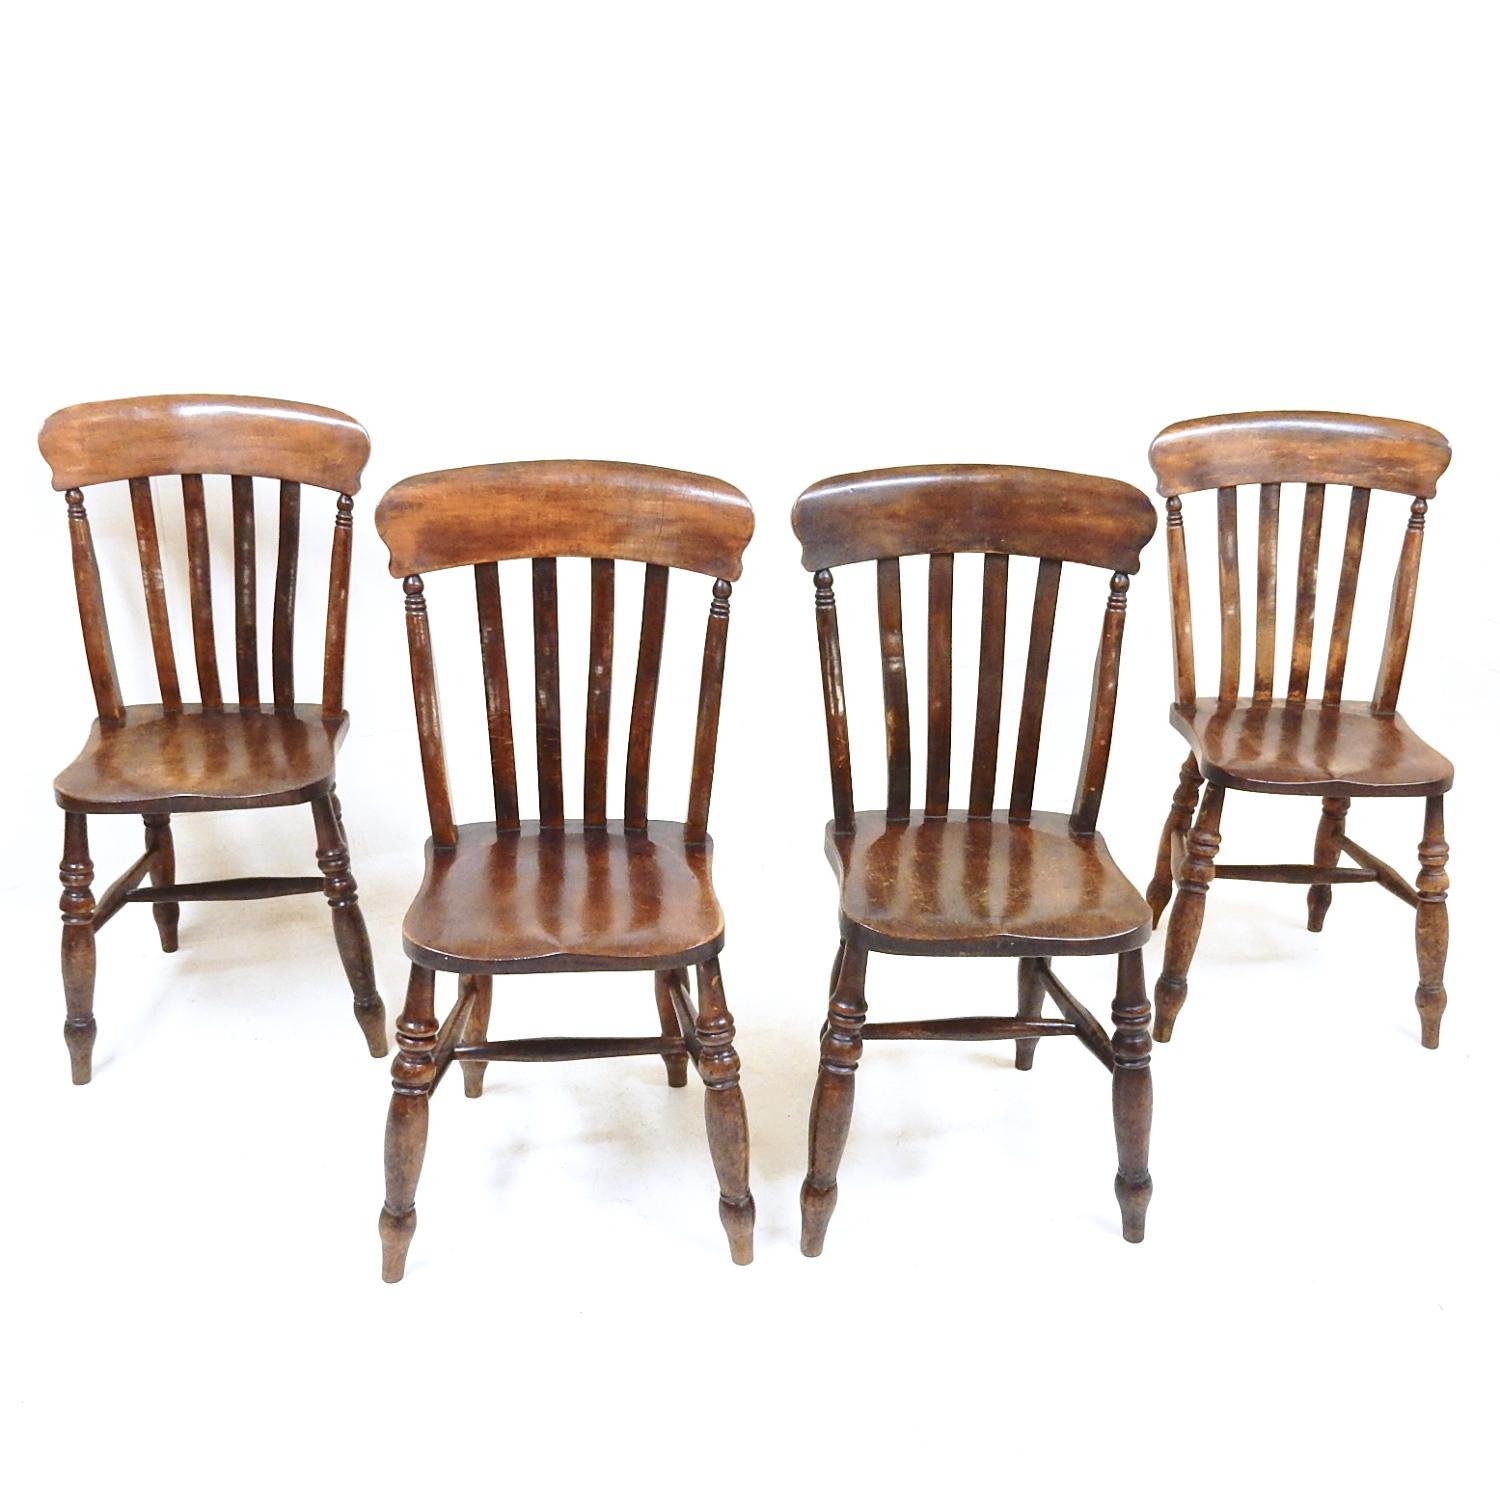 Antique Kitchen Dining Chairs